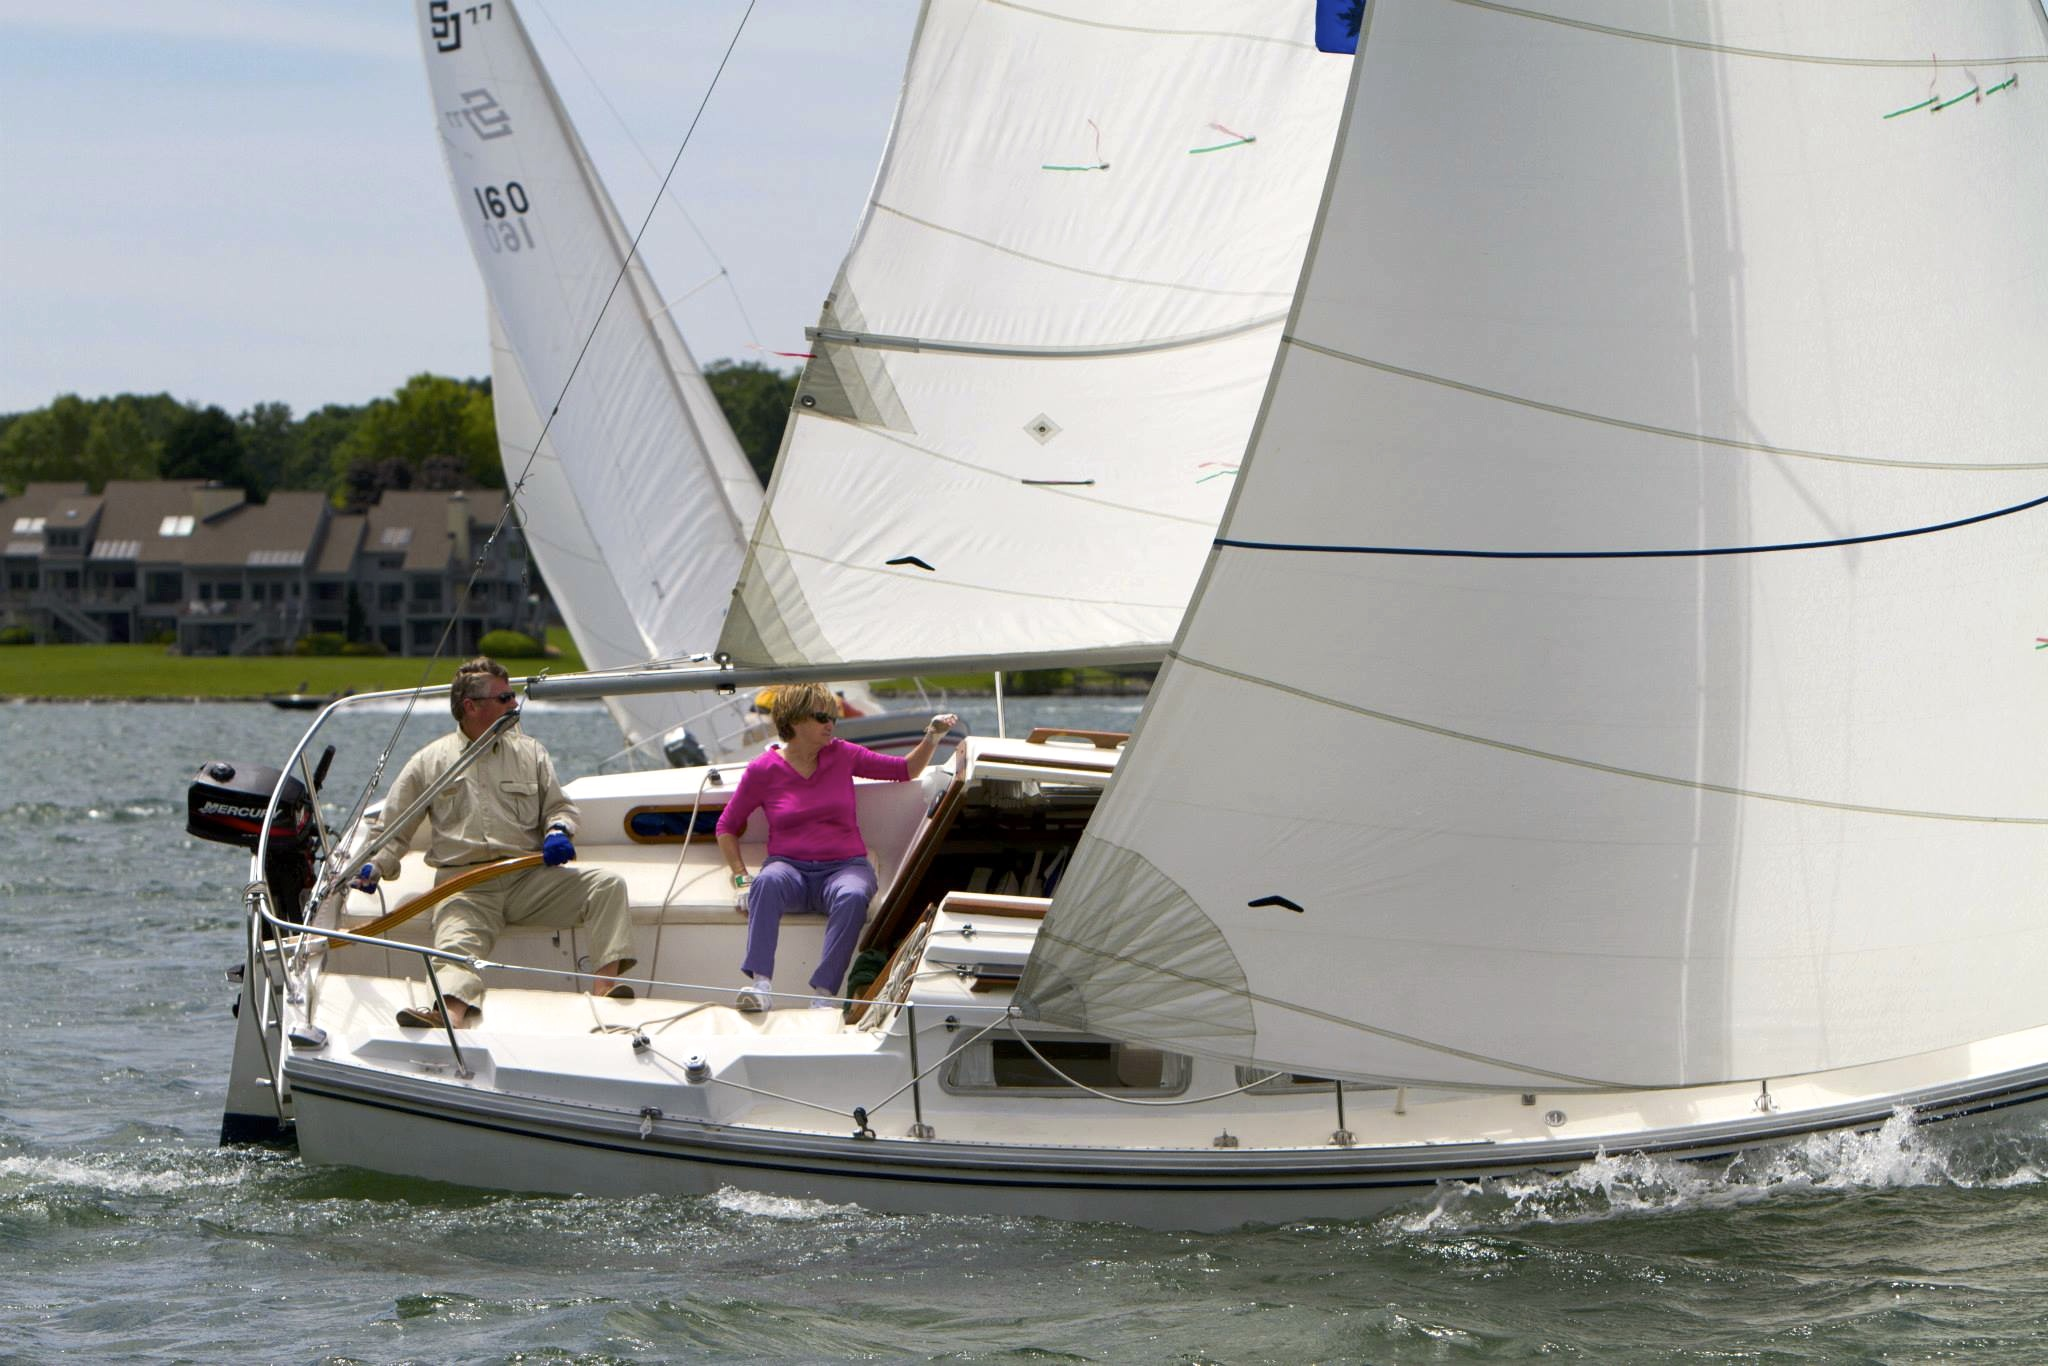 catalina 25 review which sailboat a catalina 25 racing under a 150% genoa